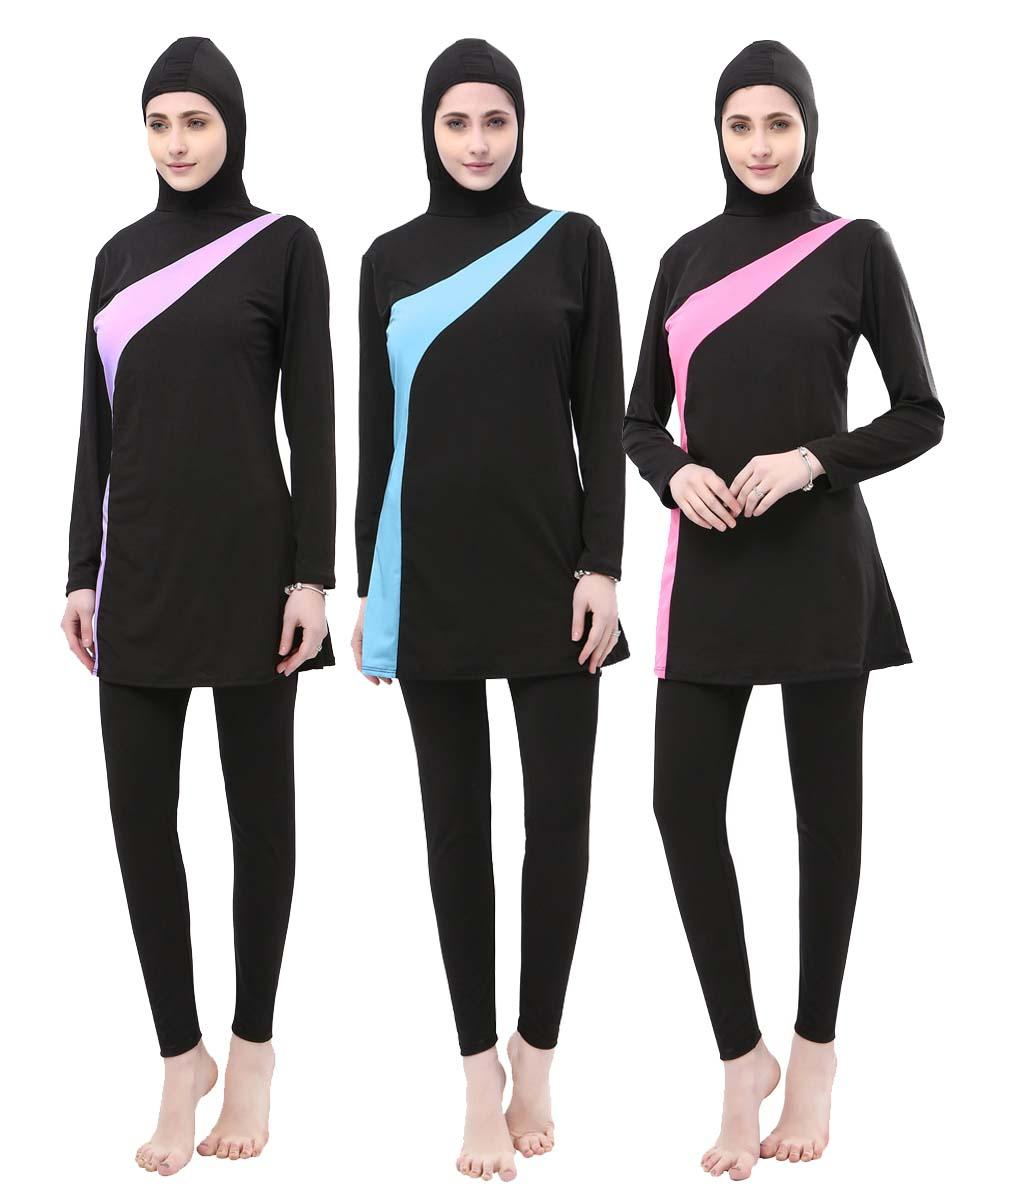 New Burkini Muslim Women Swimwear Full Cover Swimsuit Islamic Modesty Hijab Beachwear Arab Bathing Suit Plus Size Swim Sur Wear